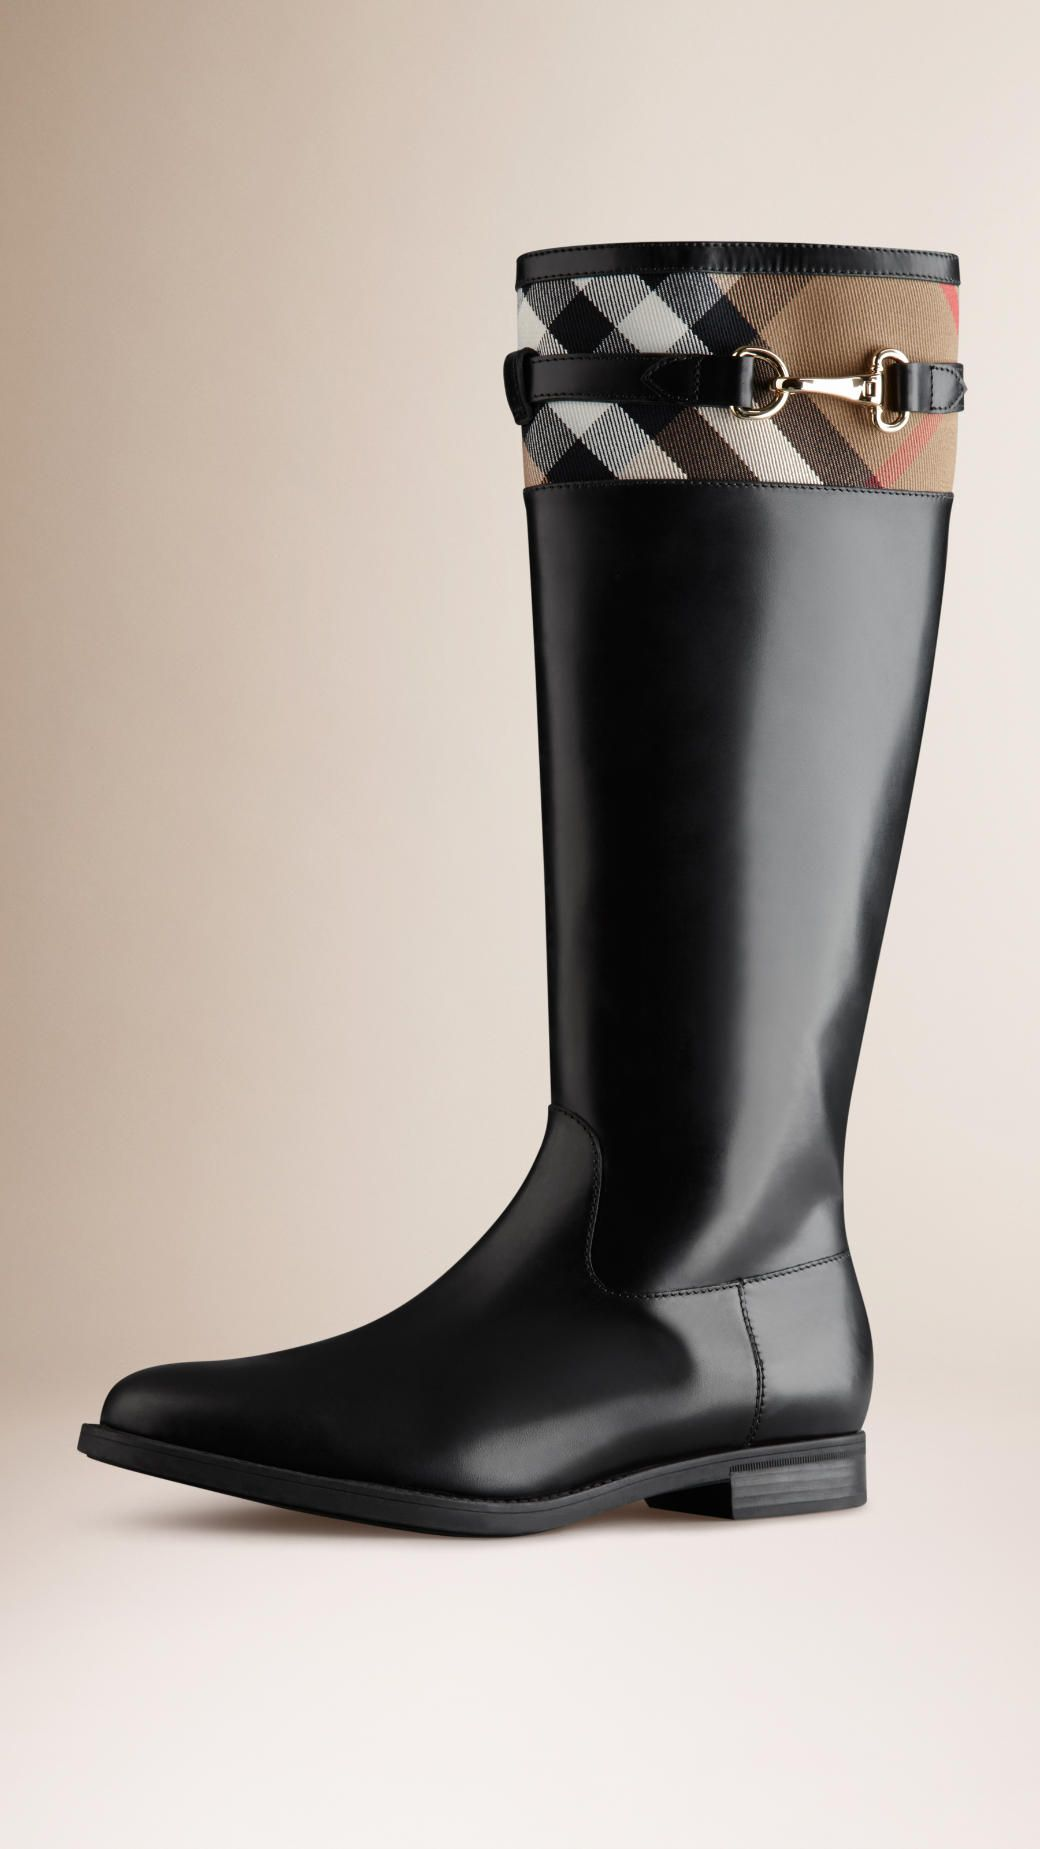 Chaussures - Bottines Burberry eeFxJn